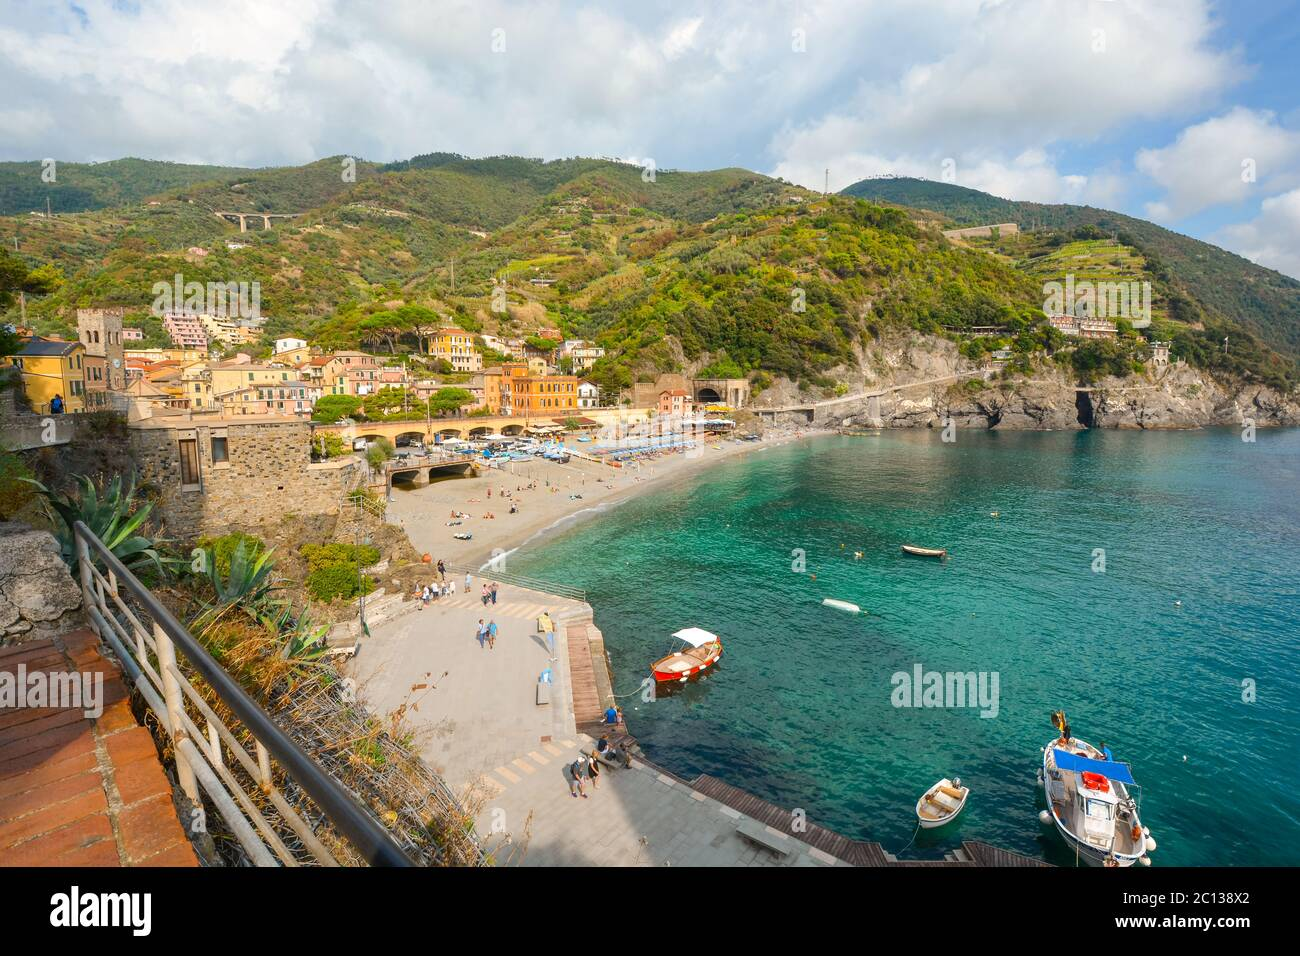 The sandy beach Spiaggia di Fegina at the old side of the Cinque Terre Italy resort village of Monterosso al Mare with tourists and boats in the sea Stock Photo